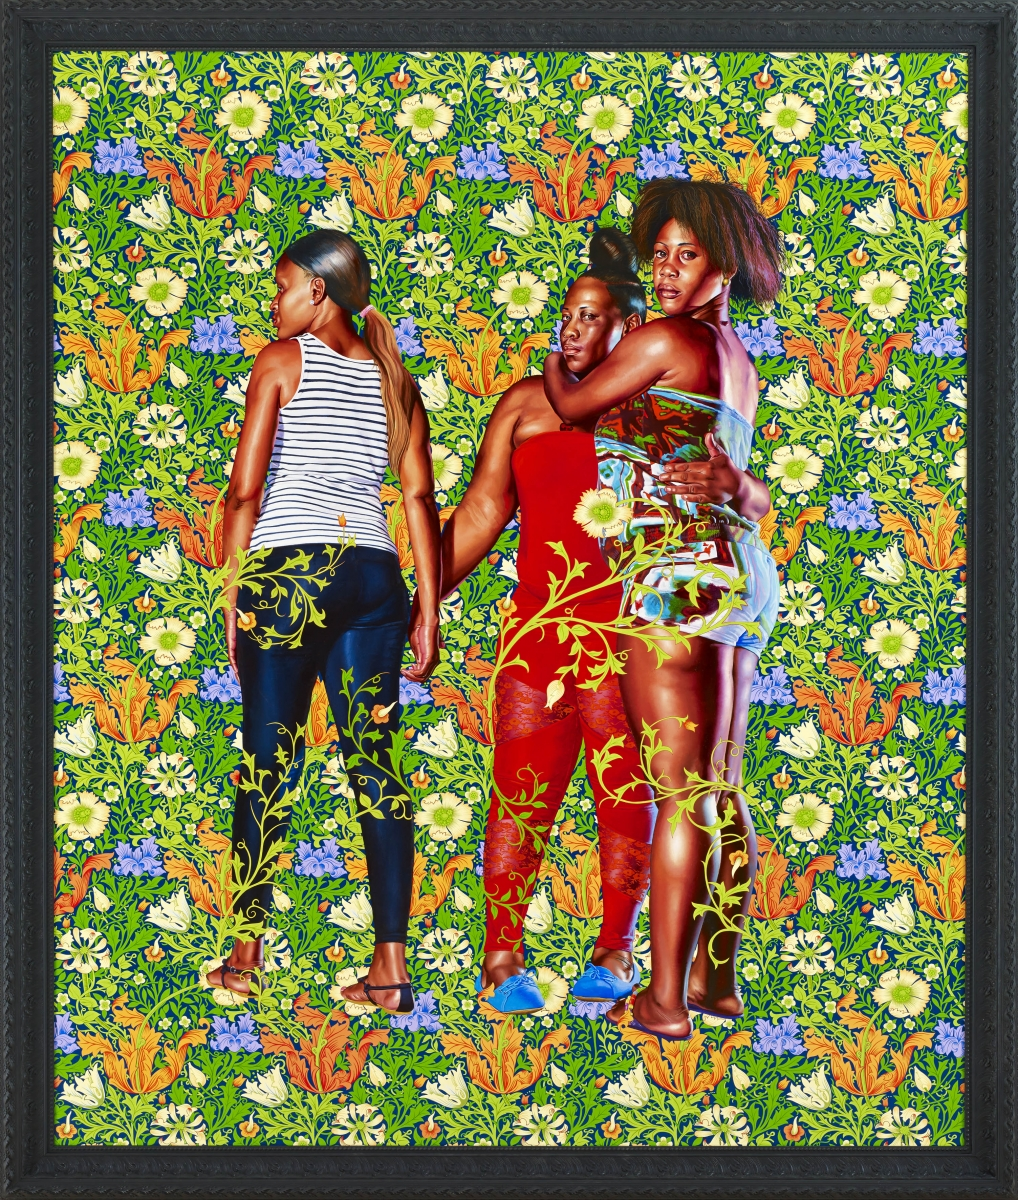 Kehinde Wiley (American, born 1977), Naomi and Her Daughters, 2013. Oil on canvas, 299.7 x 255.3 x 10.2 cm. Nancy A. Nasher and David J. Haemisegger Collection. © Kehinde Wiley Studio